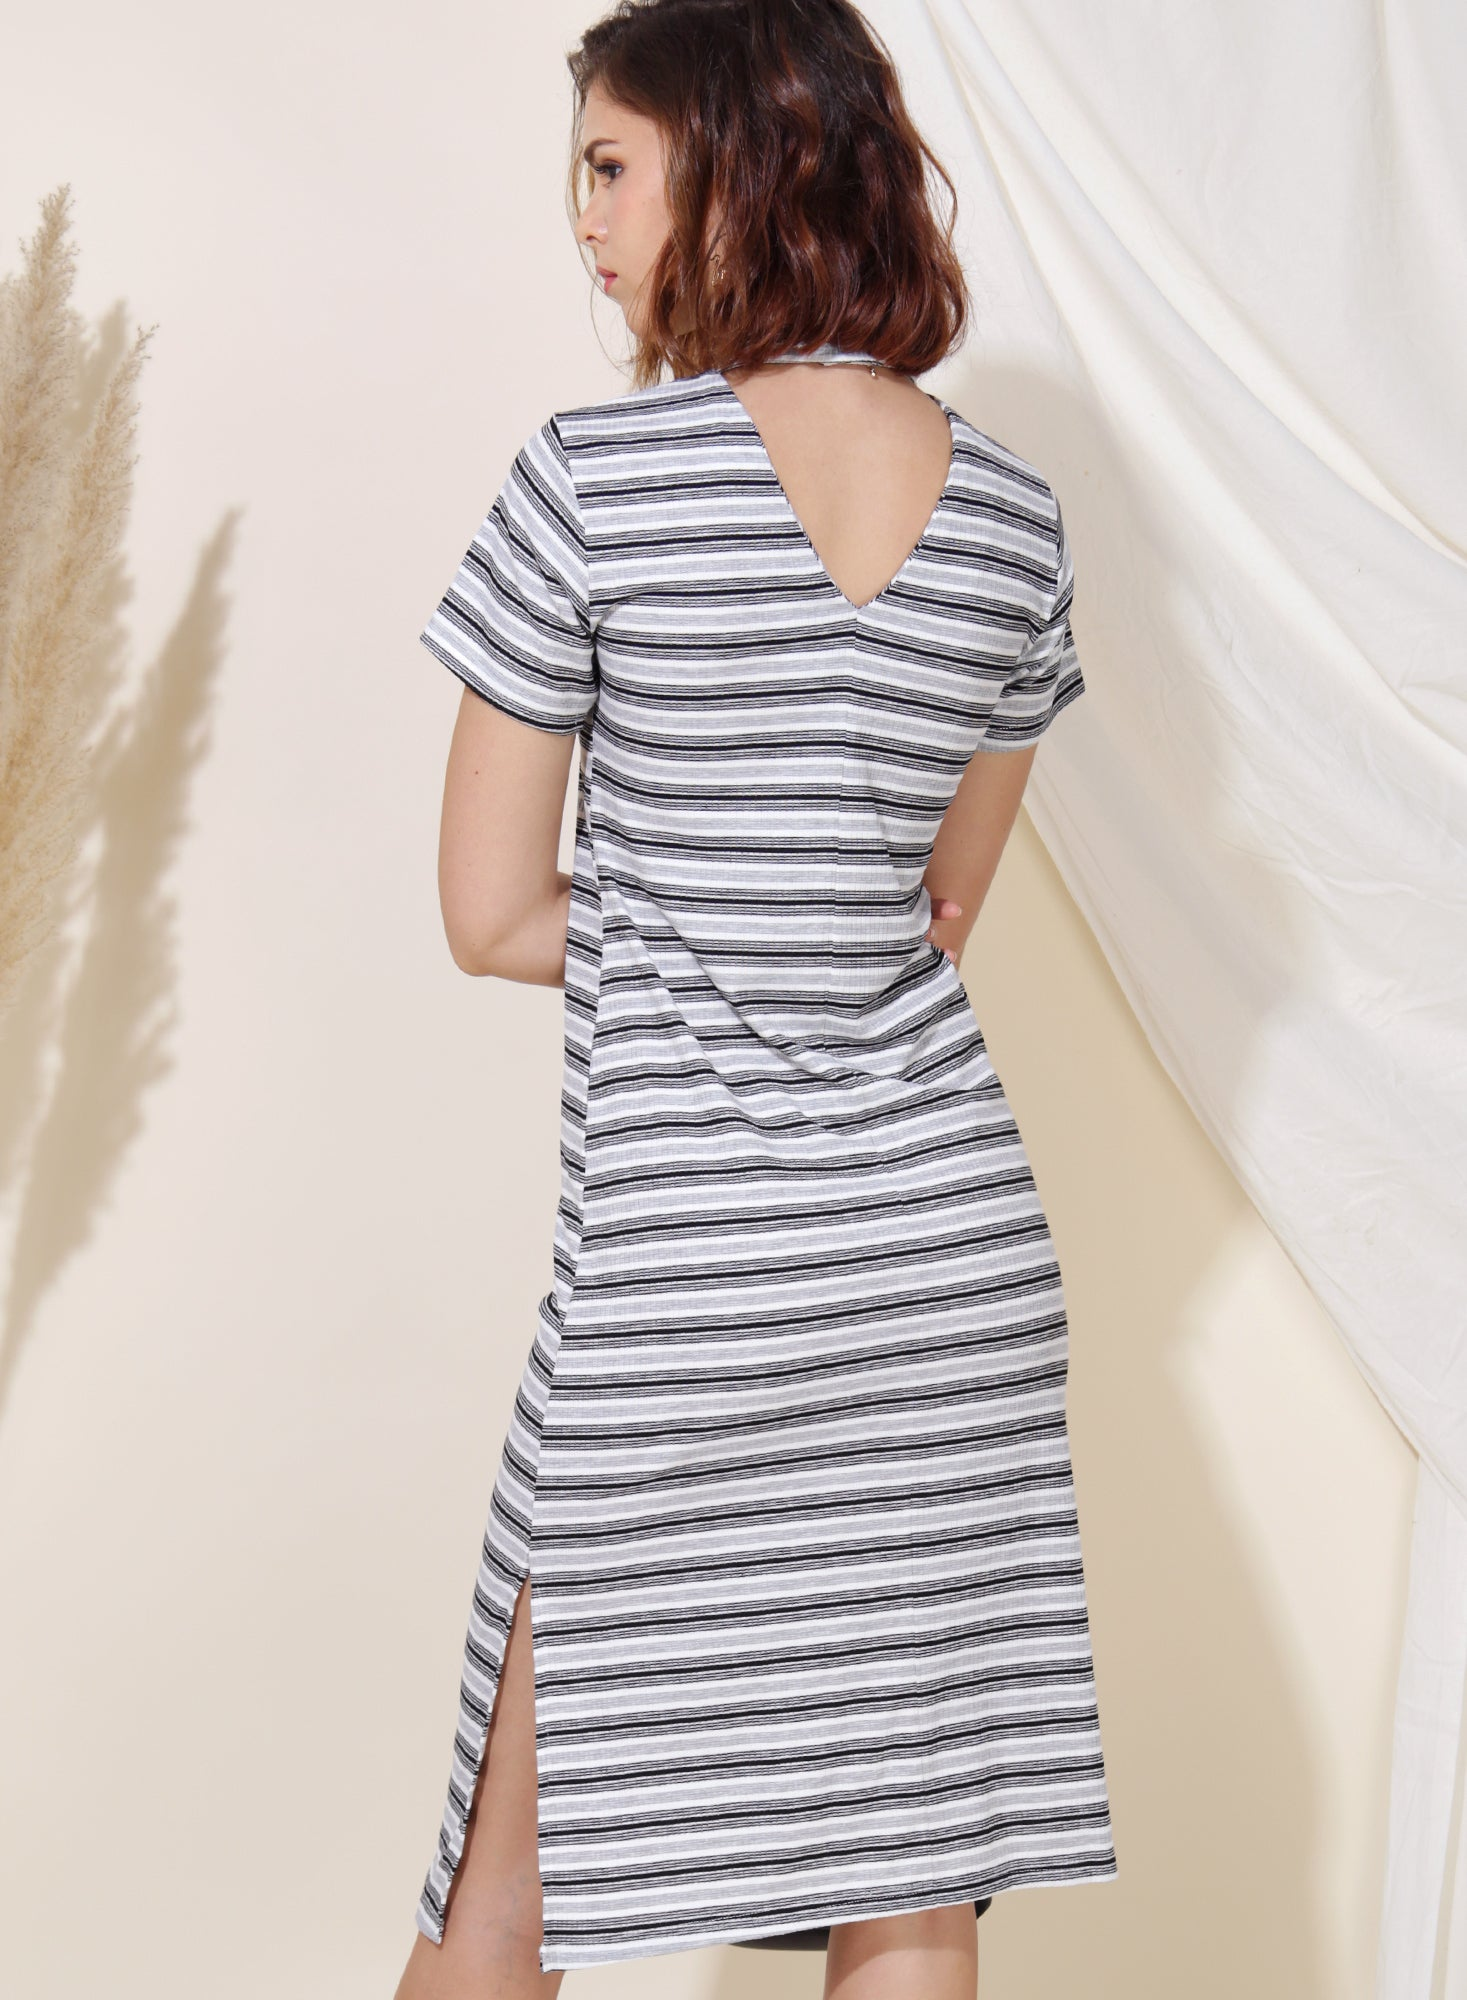 Revolve Ribbed Knit Midi Dress (B/W Stripes)